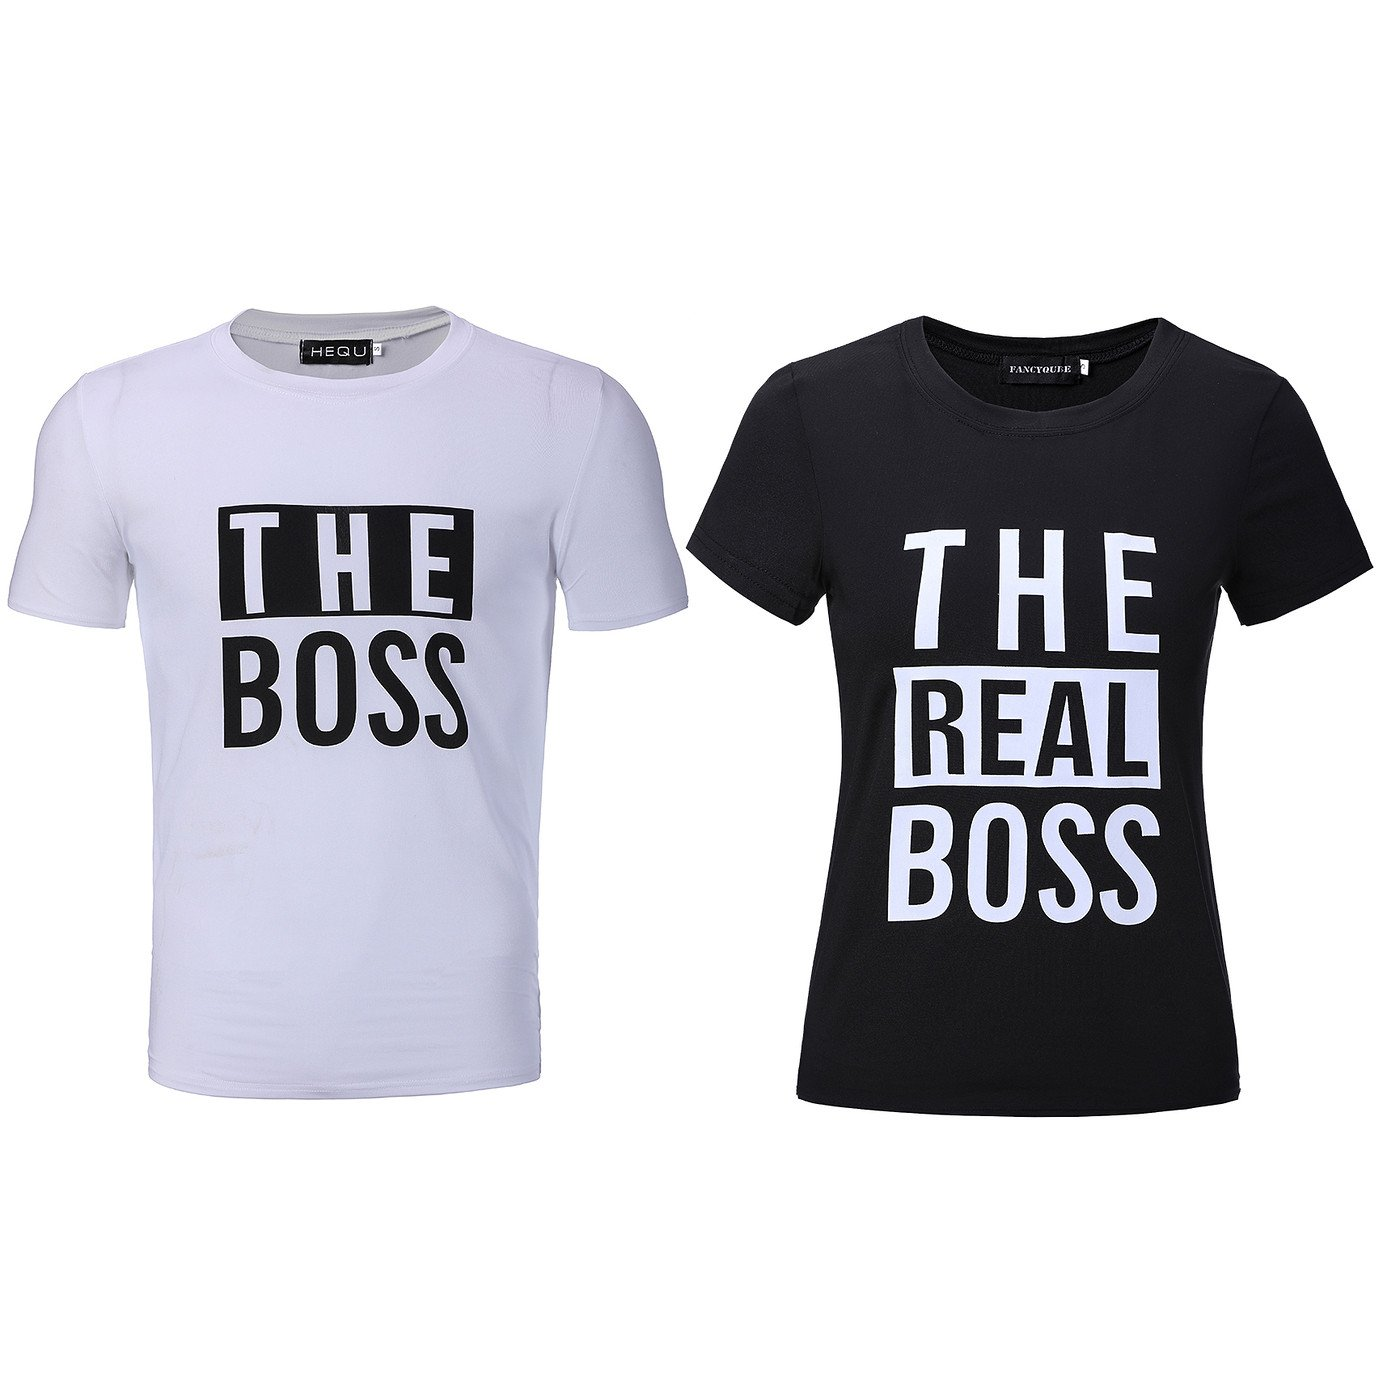 Bangerdei The Boss and The Real Boss Couples T-Shirts Anniversary Newlywed Matching Set Tops Valentines Gifts Black Women L + White Men XL